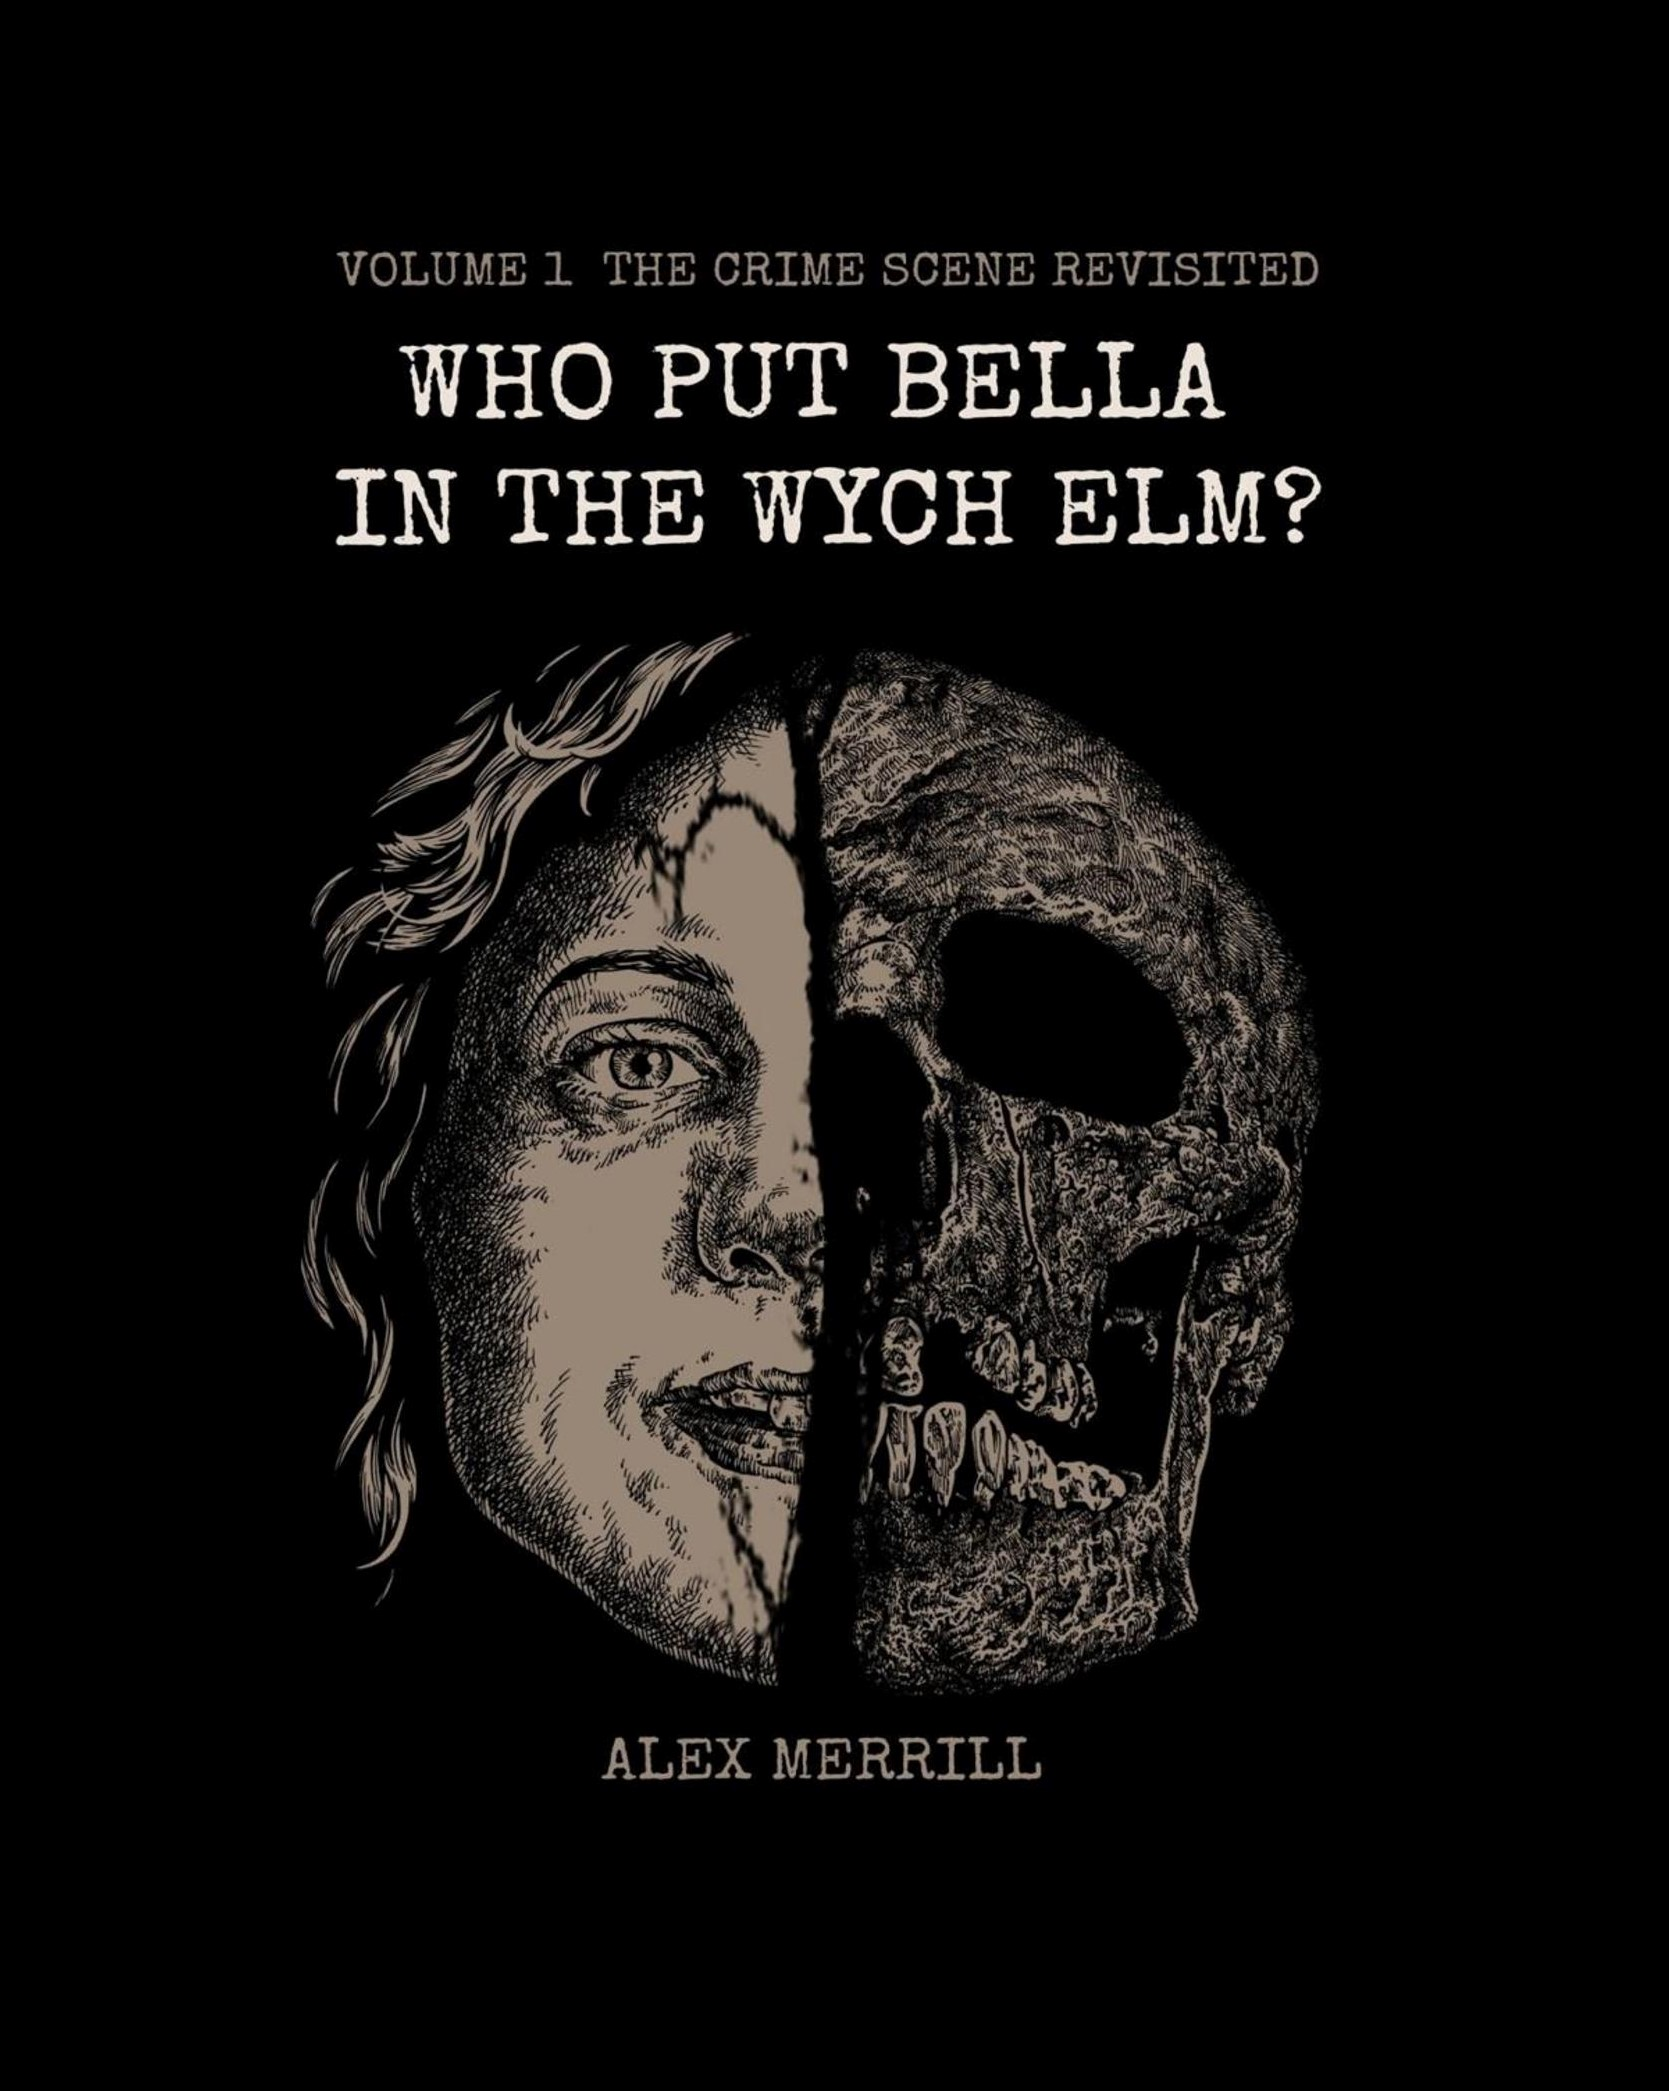 The cover of Who Put Bella In The Wych Elm?: Volume 1: The Crime Scene Revisited - published by APS Books